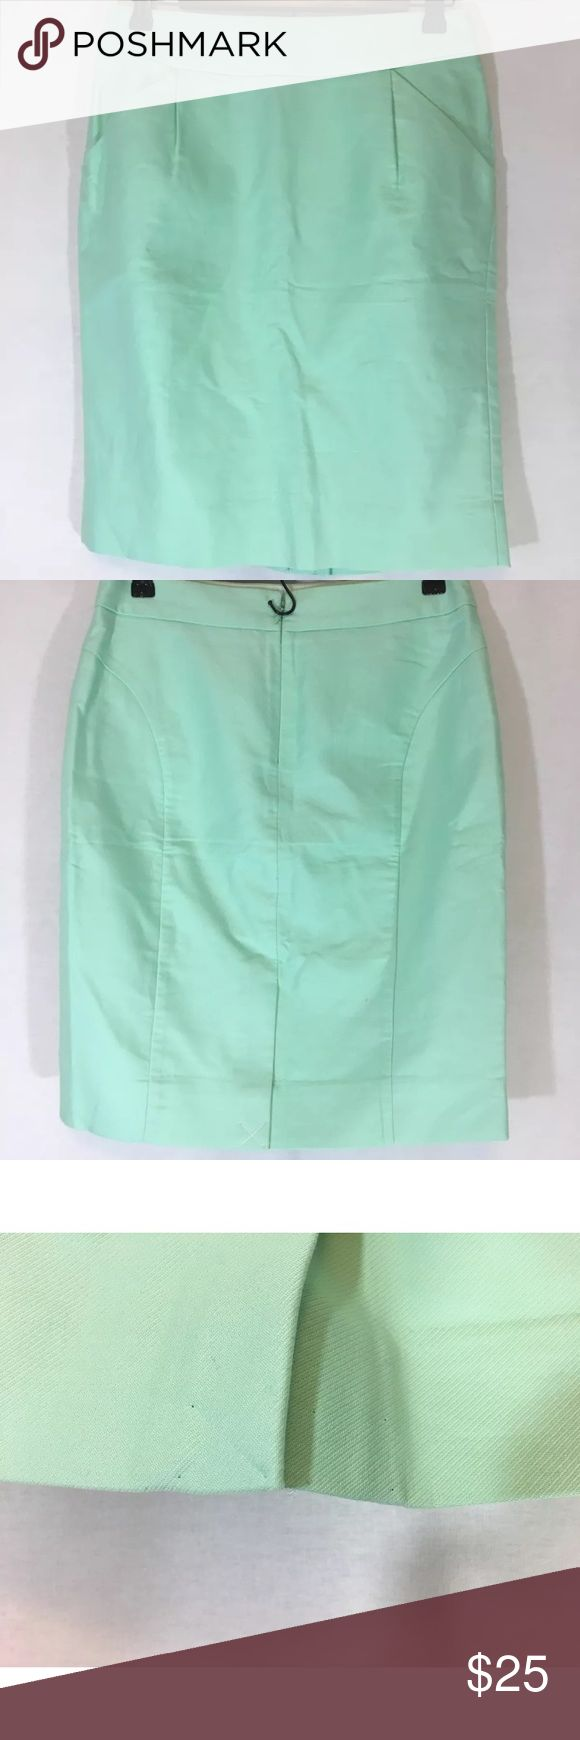 """J Crew Mint Seafoam Green Pencil Skirt Office Wear Beautiful double surged cotton pencil skirt! Back zipper closure. Has pockets! Slit was sewn but the thread has been pulled out which left small pin pricks as shown in picture.                                                            Measurements: Waist 30""""  Length 21""""   Slit 6"""" J. Crew Factory Skirts Pencil"""